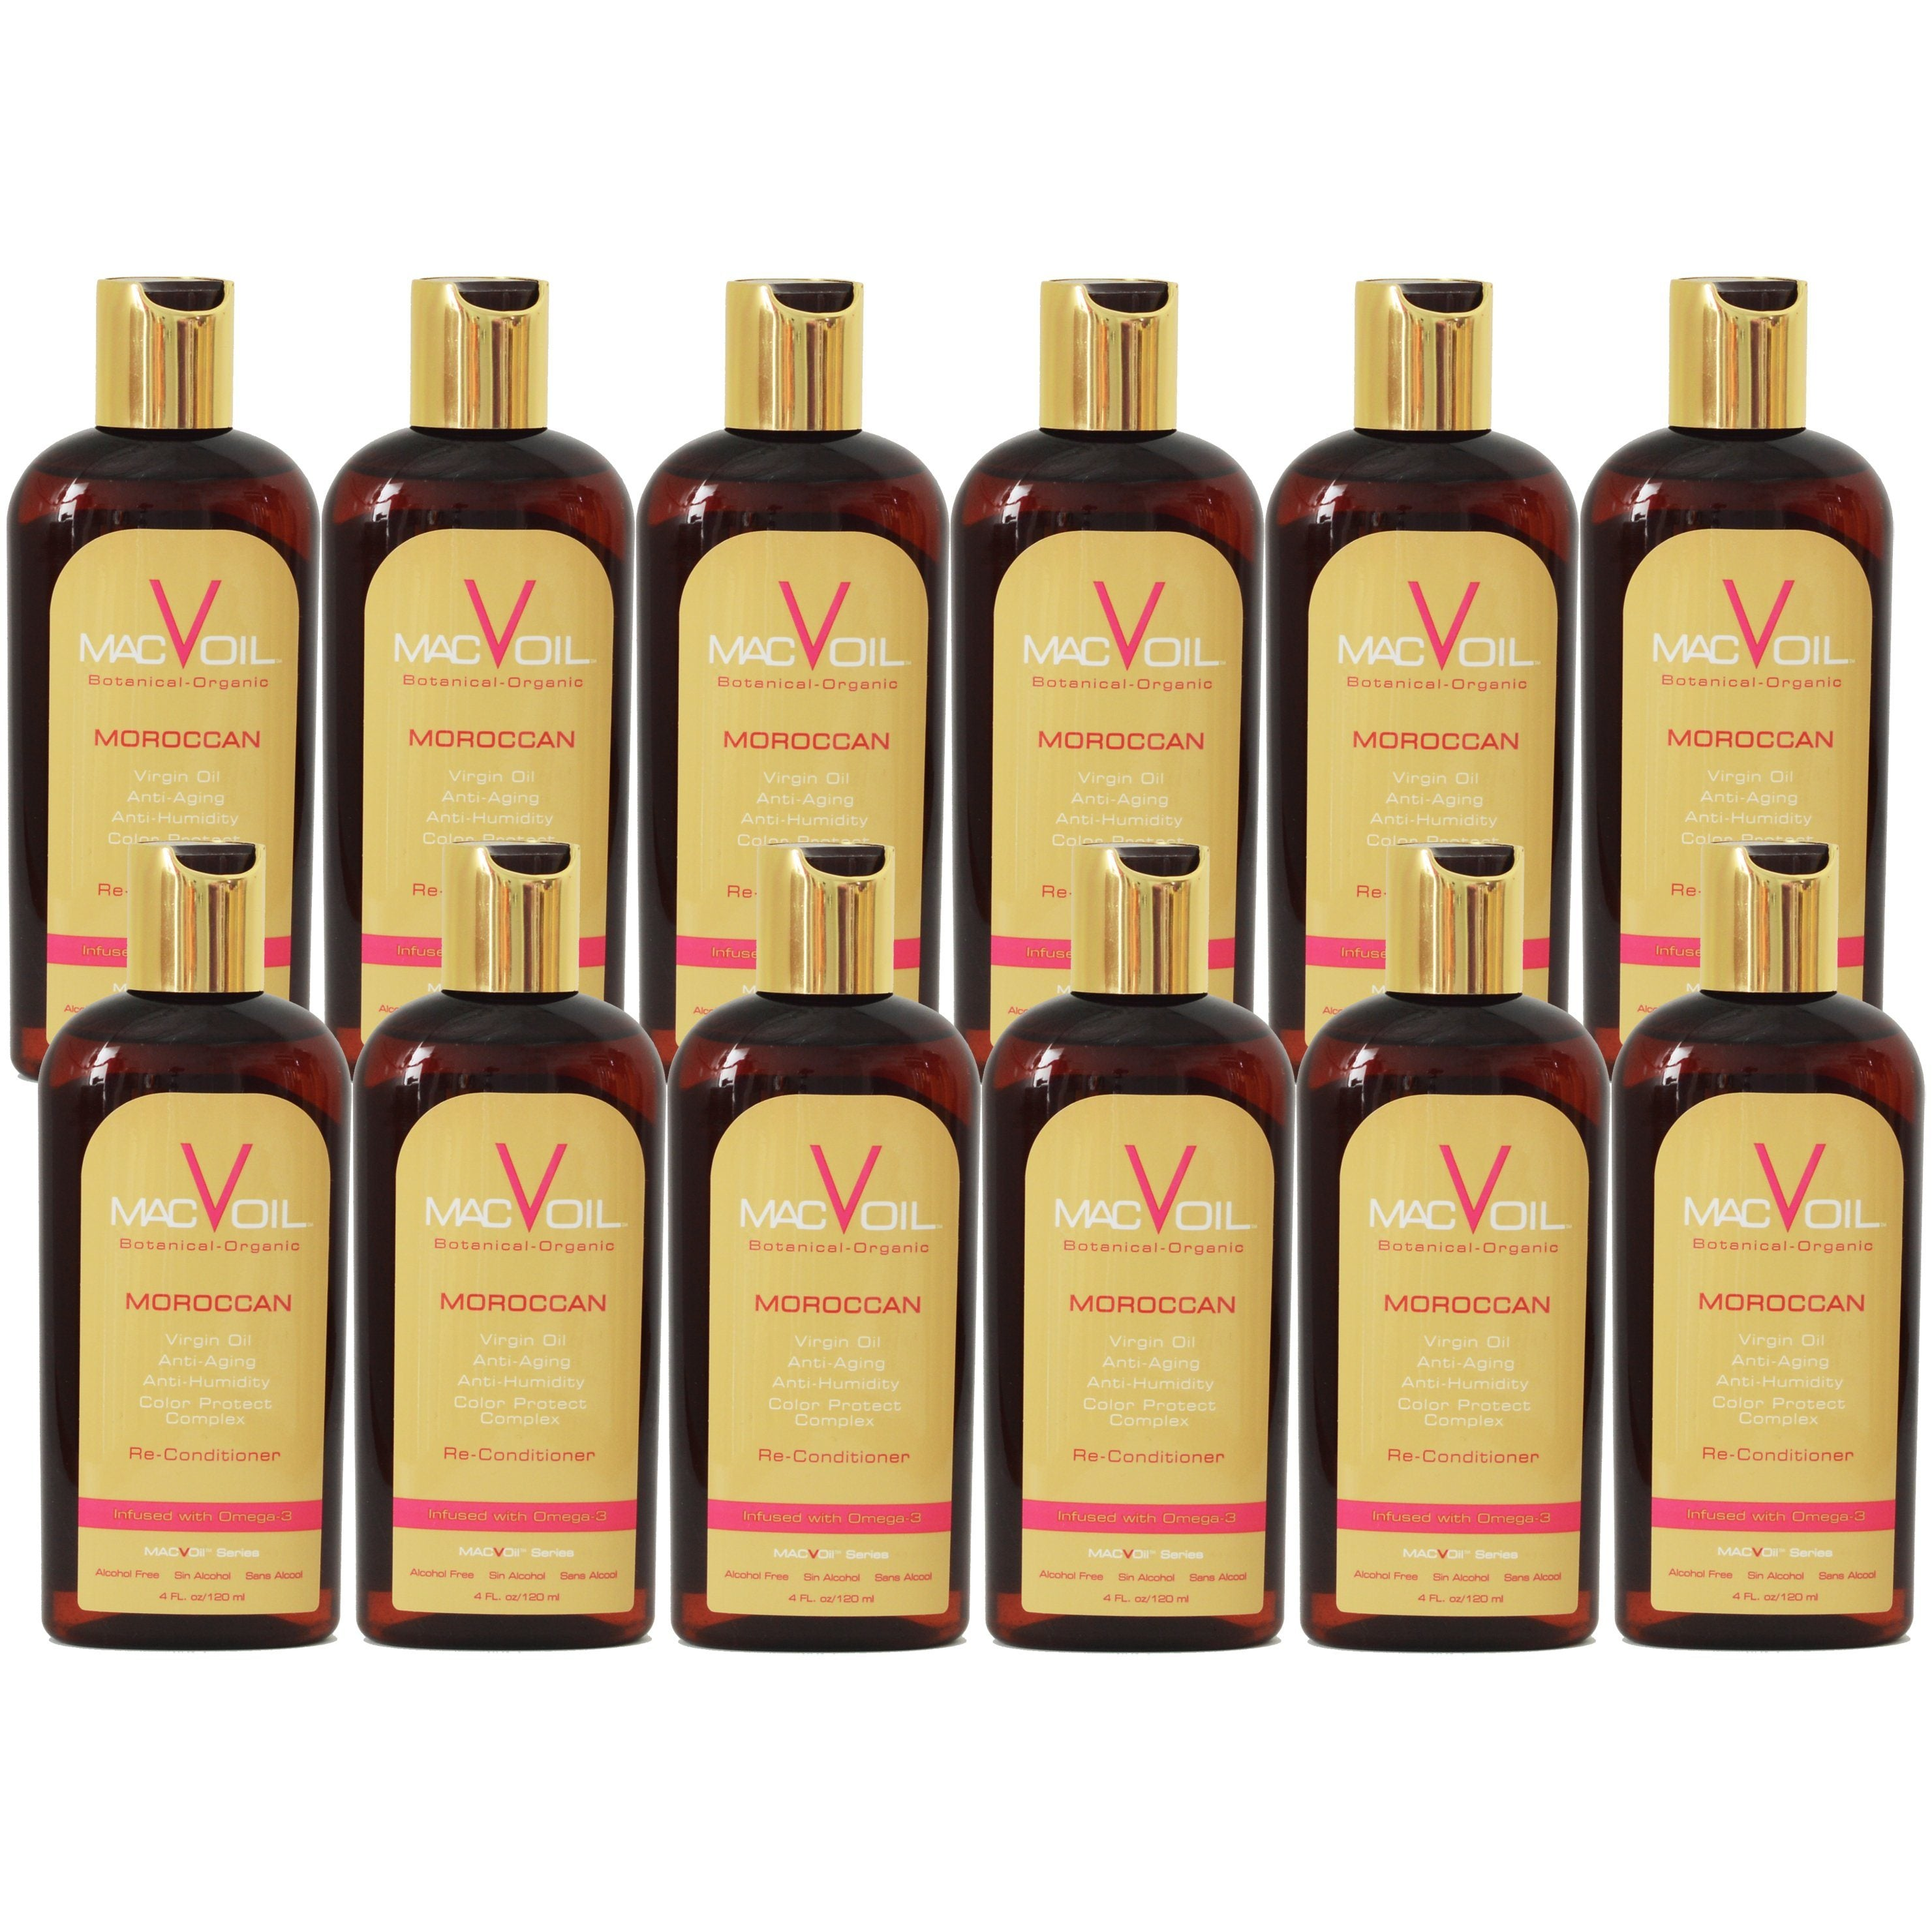 (12) Moroccan Re-Conditioner 4 fl. oz. HAIR STYLING PRODUCTS MACVOIL